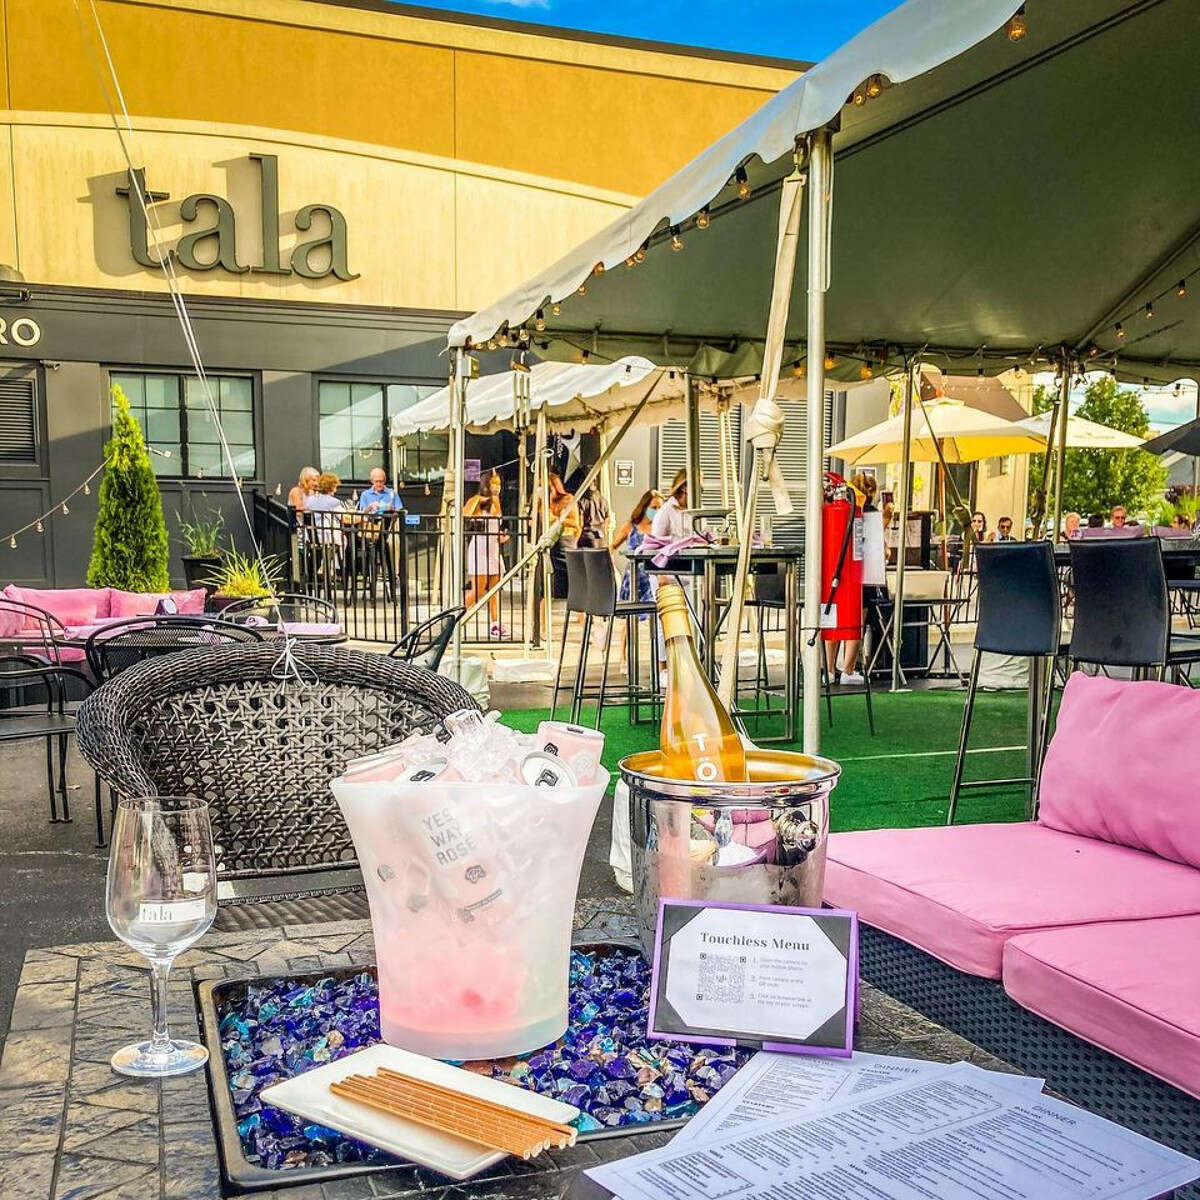 Outdoor seating at Tala - An American Bistro in Latham includes tables on the patio and under a tent. (Provided photo.)